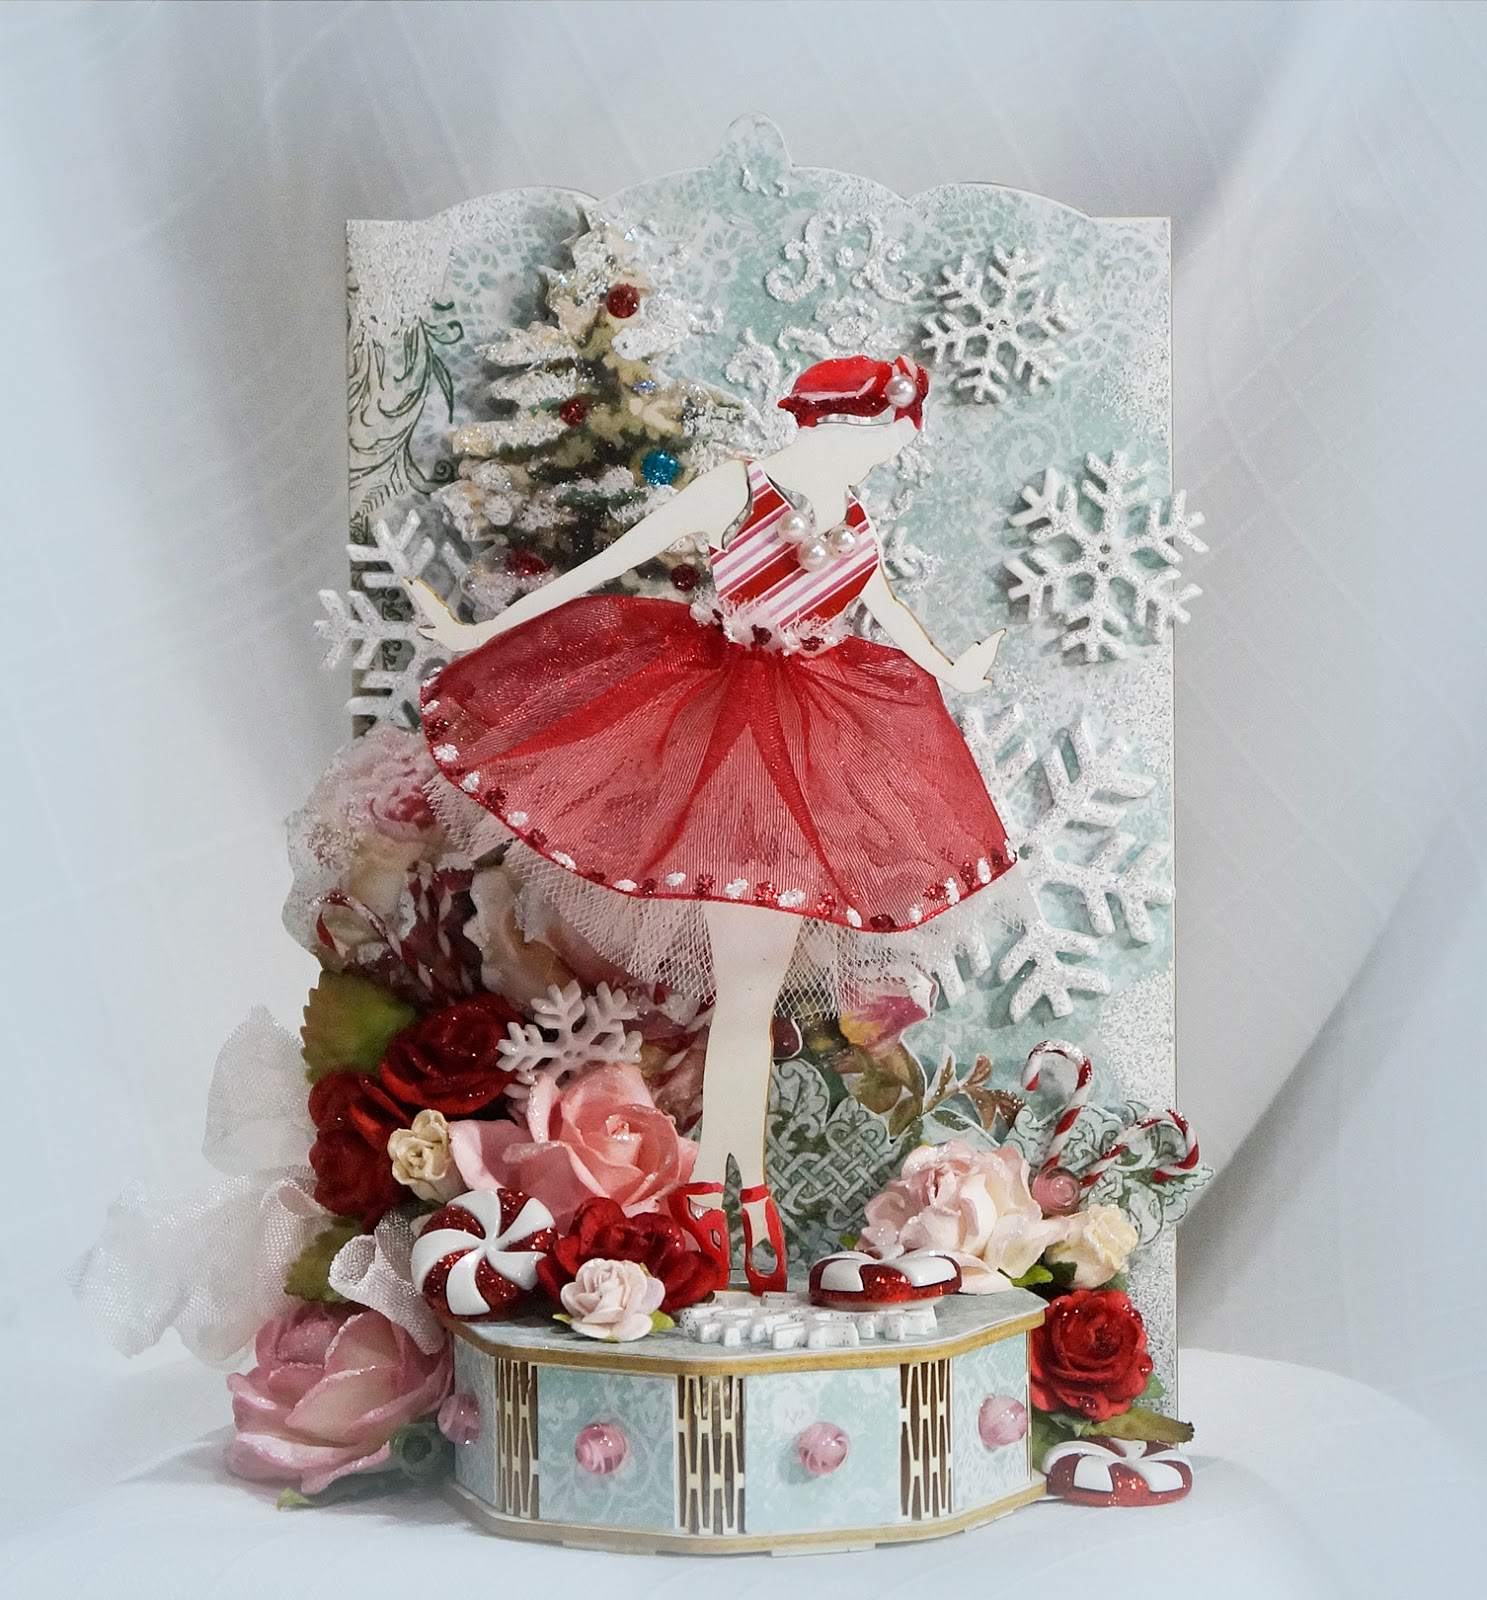 Terrys scrapbooks decorated reneabouquets 3d ballerina chipboard kit i have decorated reneabouquets beautiful board 3d ballerina do it yourself laser cut chipboard kit to look like the sugar plum fairy solutioingenieria Image collections